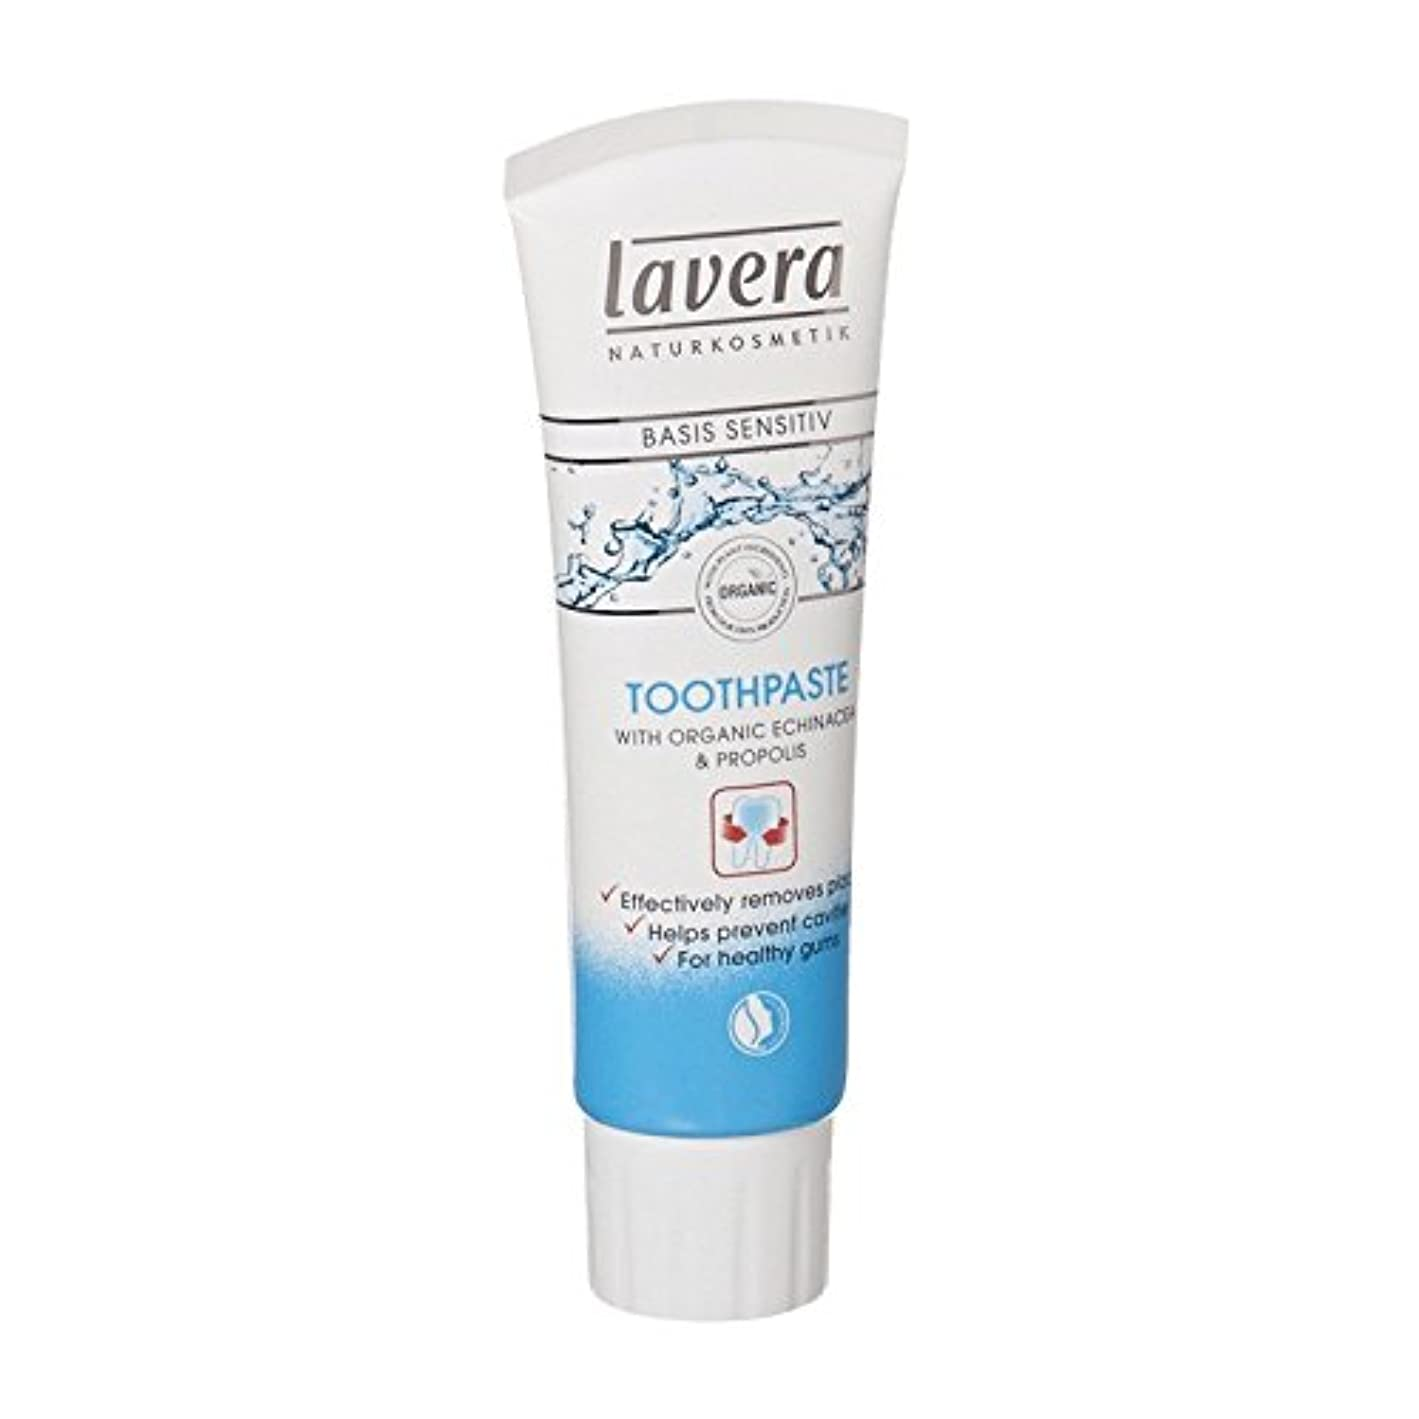 Lavera Basis Sensitiv Toothpaste Echinacea & Propolis (Pack of 2) - Laveraの基礎Sensitiv歯磨き粉エキナセア&プロポリス (x2) [並行輸入品]